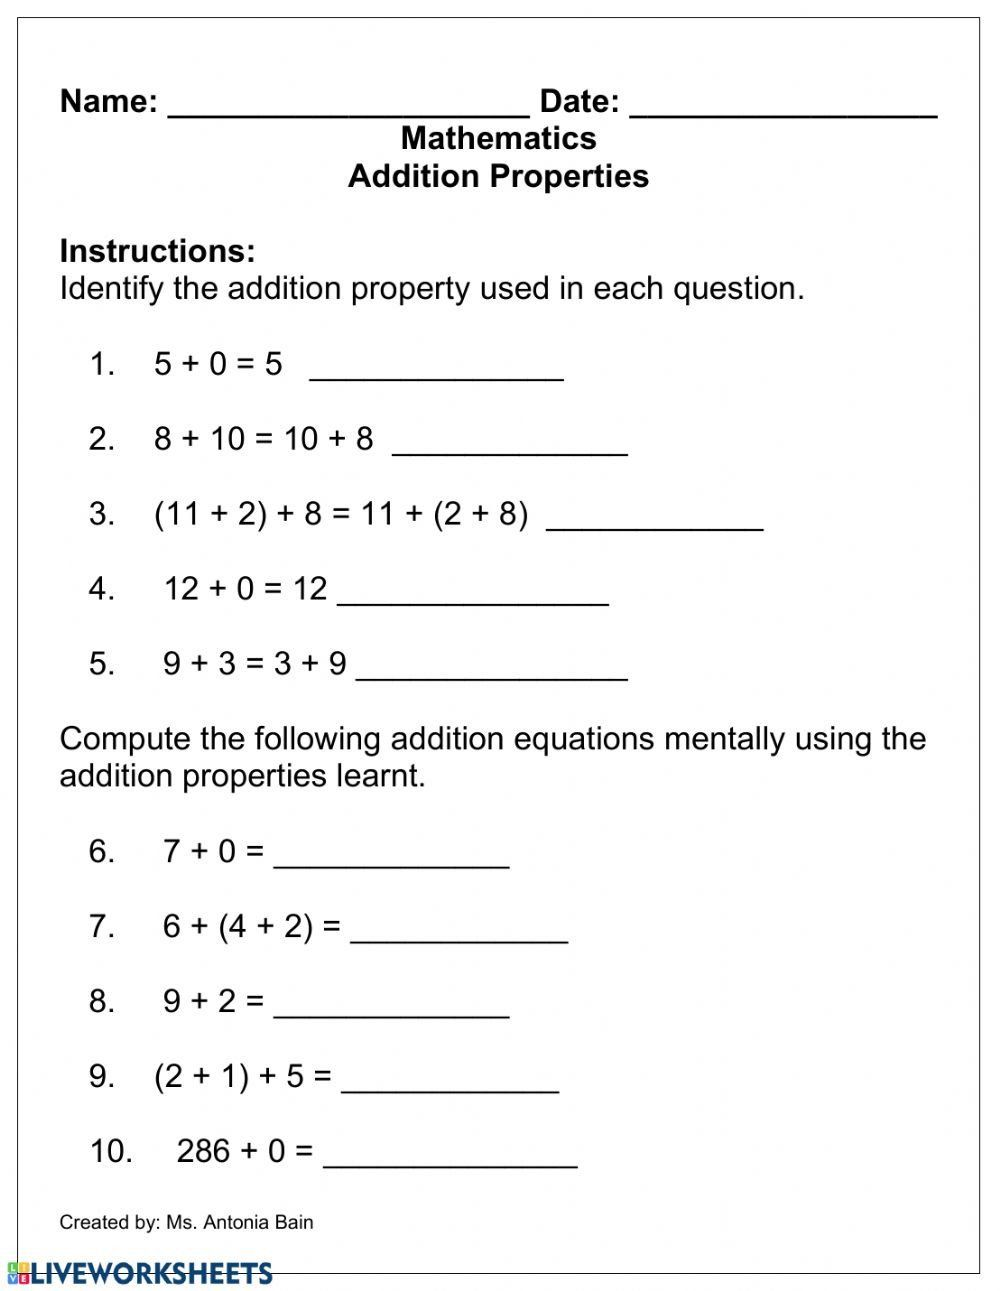 Addition And Multiplication Properties Worksheets Addition Properties Interactive Work In 2021 Properties Of Addition Addition Worksheets Identity Property Of Addition [ 1291 x 1000 Pixel ]